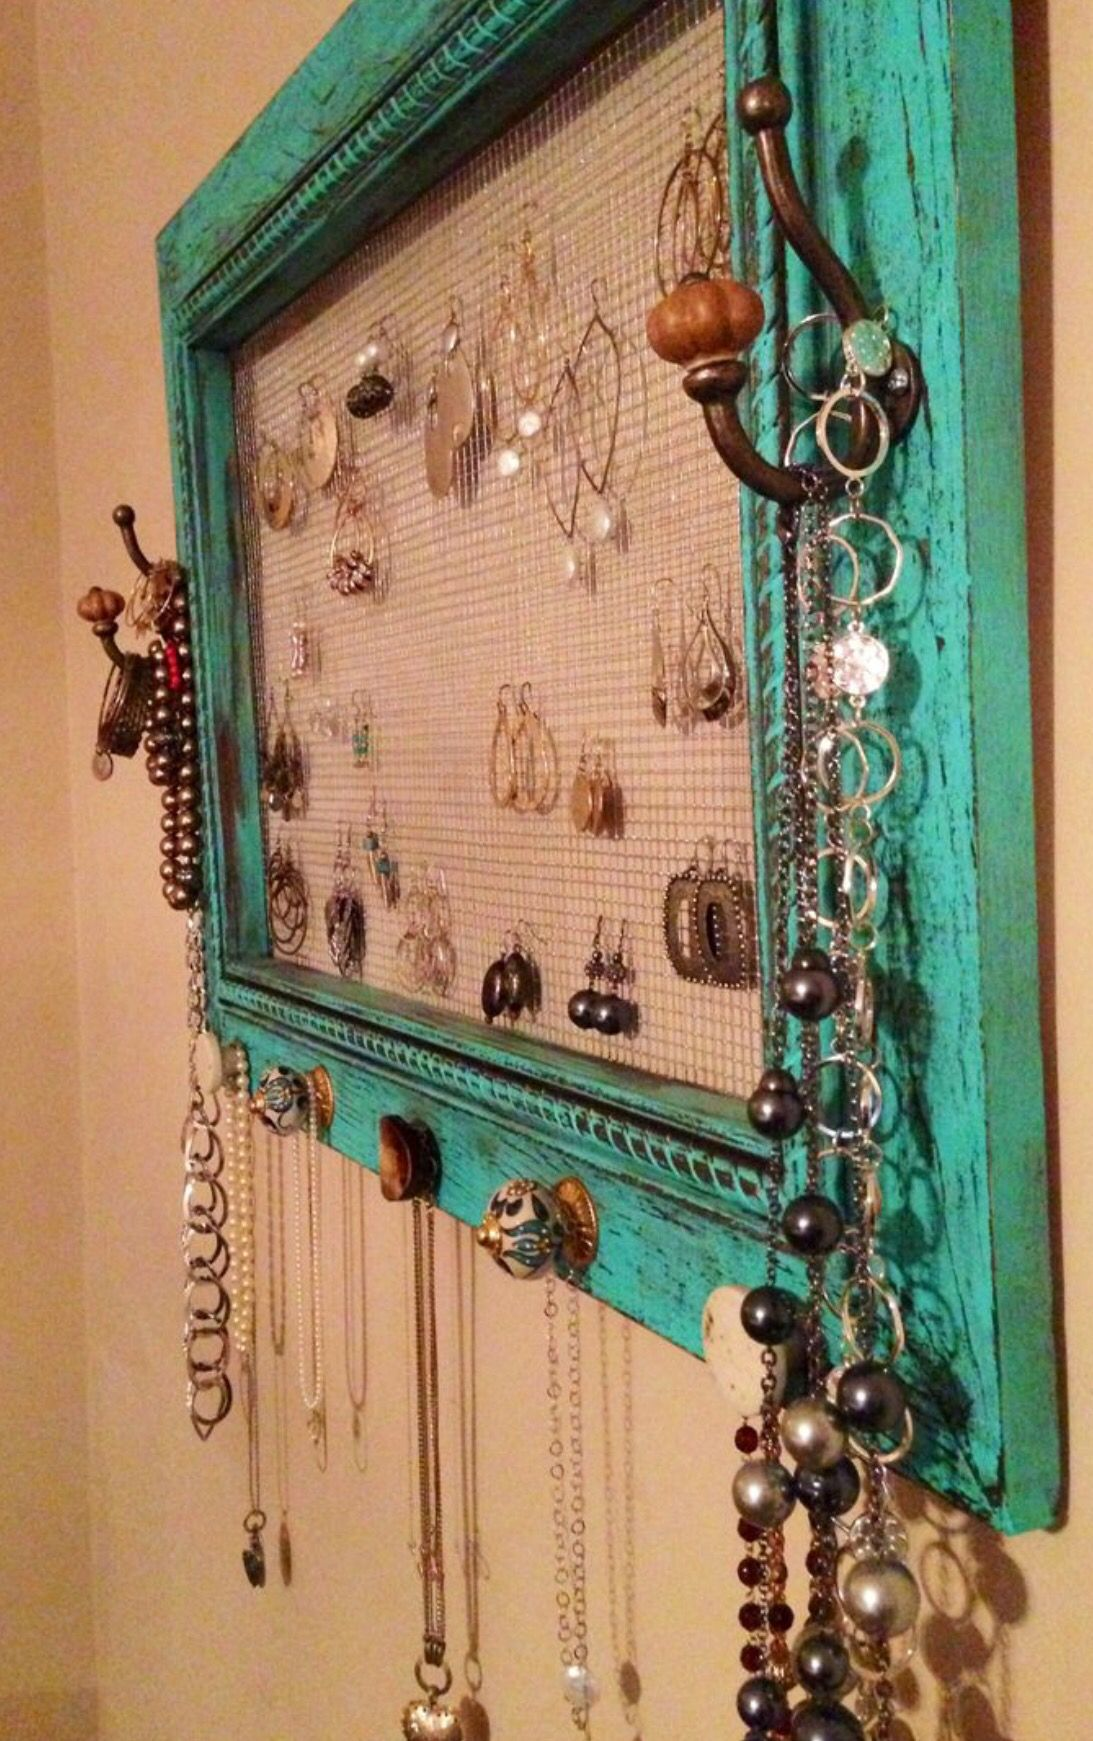 Pin by Jenni on Jewelry display ideas | Pinterest | Homemade jewelry ...